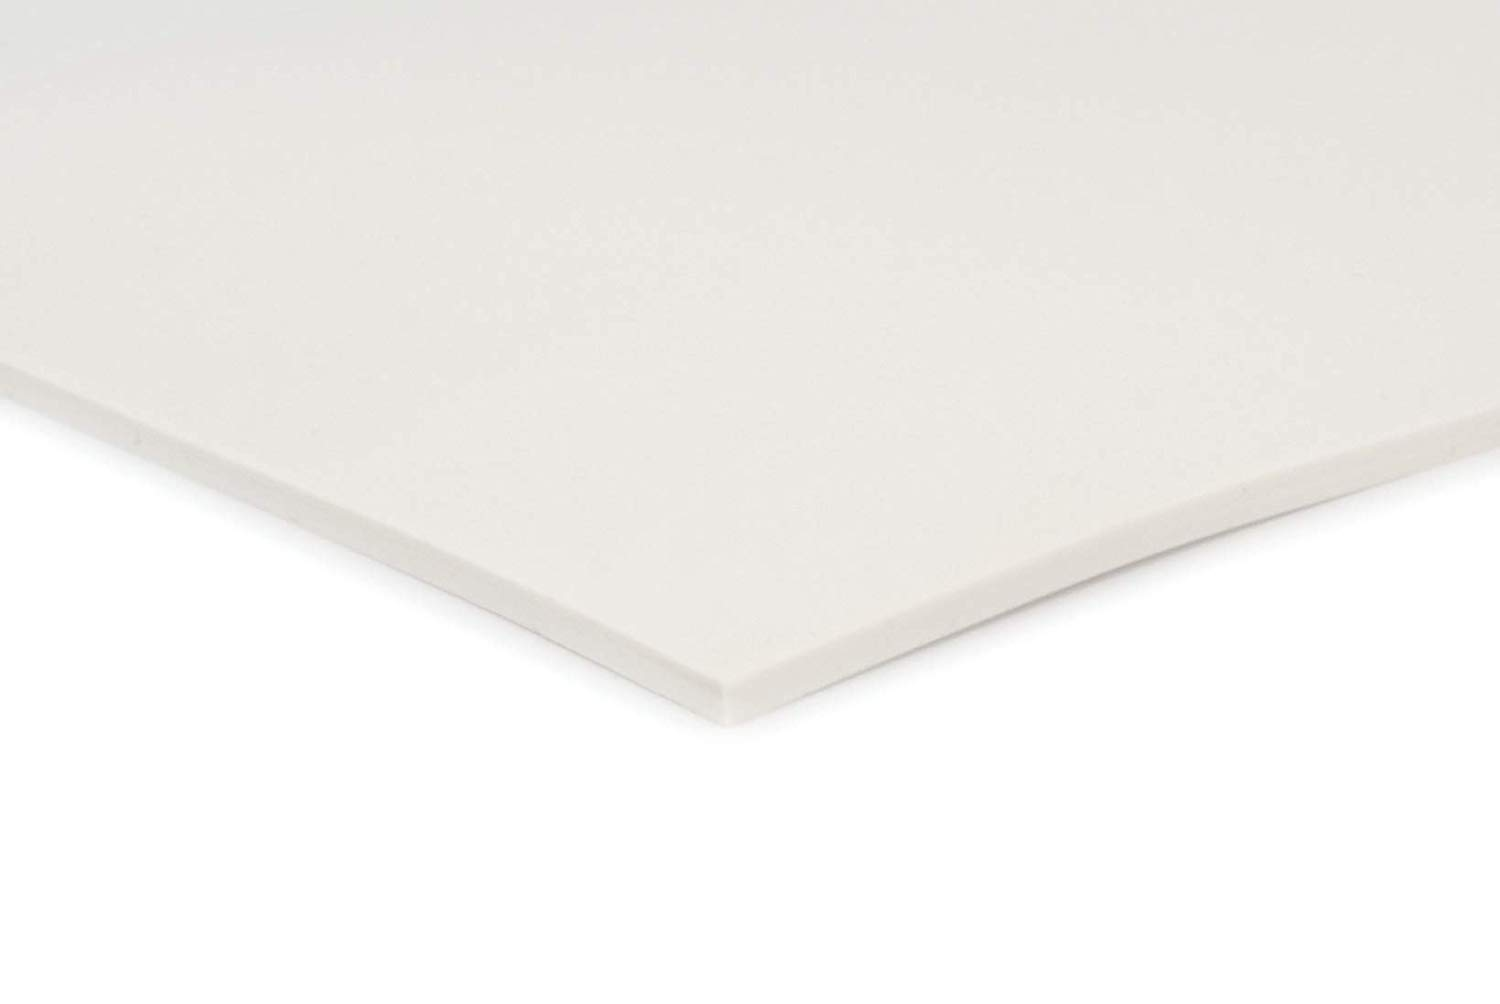 420mm x 297mm White Silicone Rubber Sheet 3mm Thick Size A3